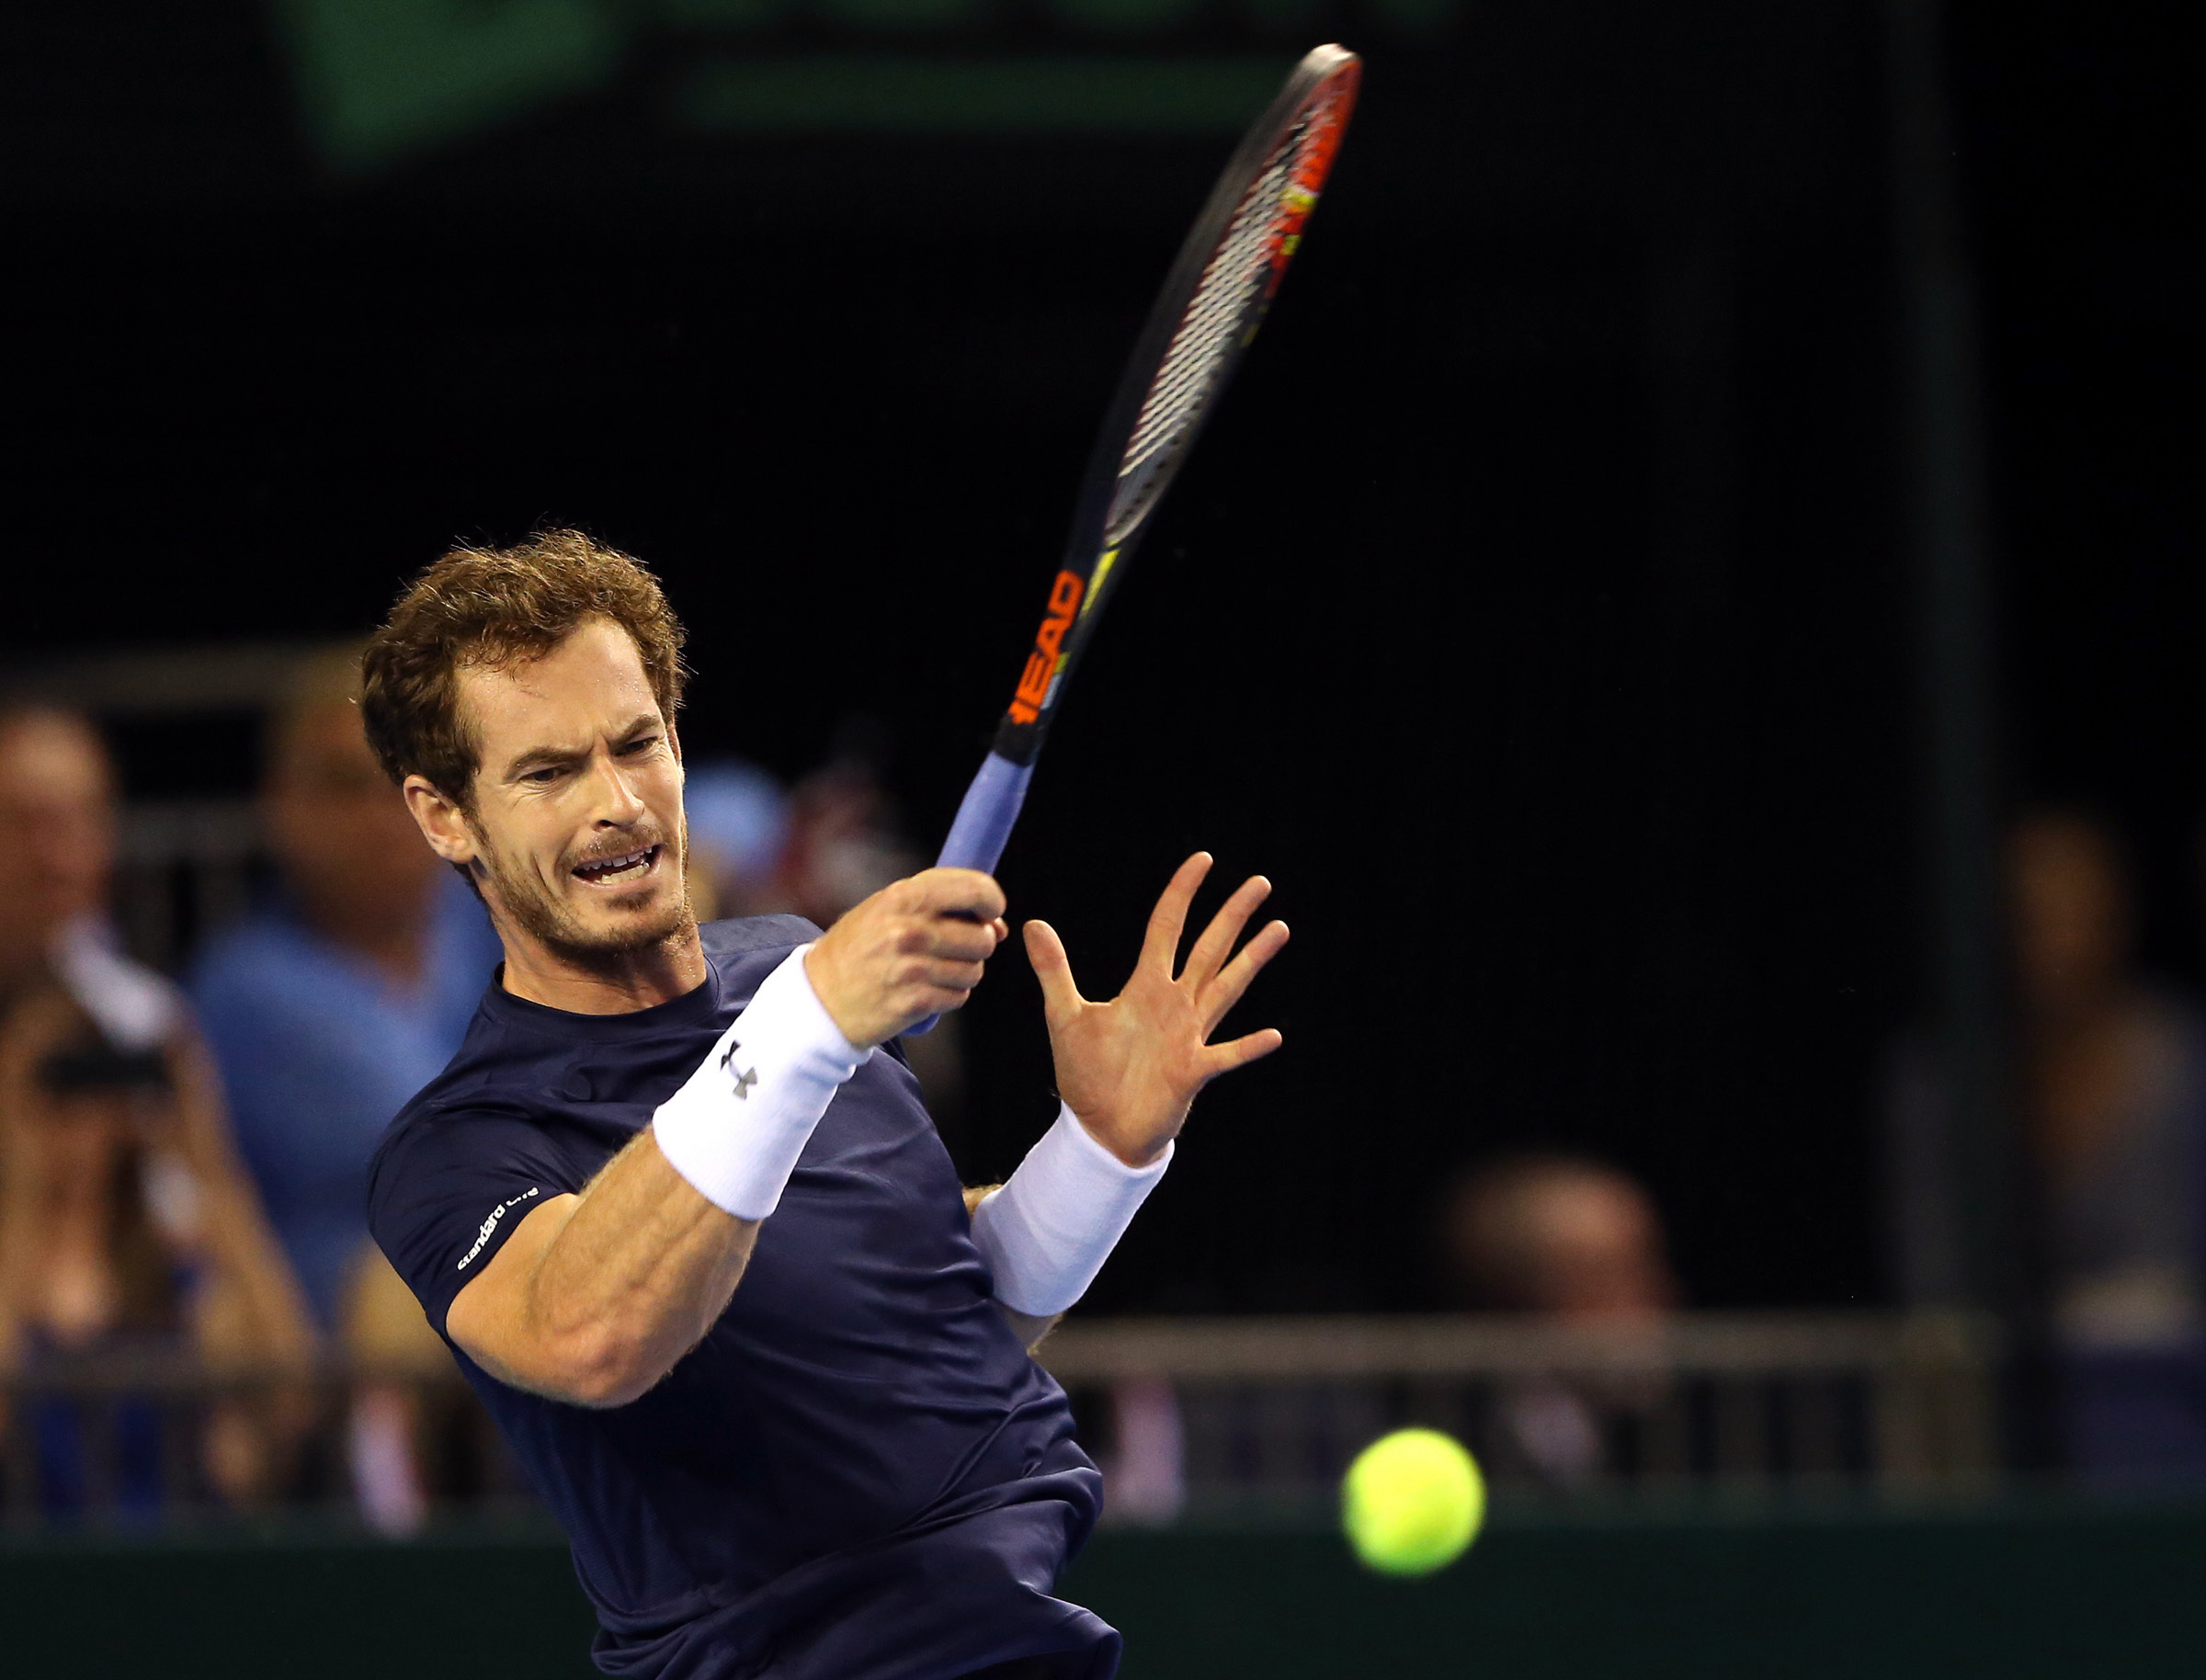 Britain's Andy Murray plays a return to Australia's Bernard Tomic during a semifinal tennis match of the Davis Cup between Britain and Australia in Glasgow, Scotland, Sunday Sept. 20, 2015. (AP Photo/Scott Heppell)